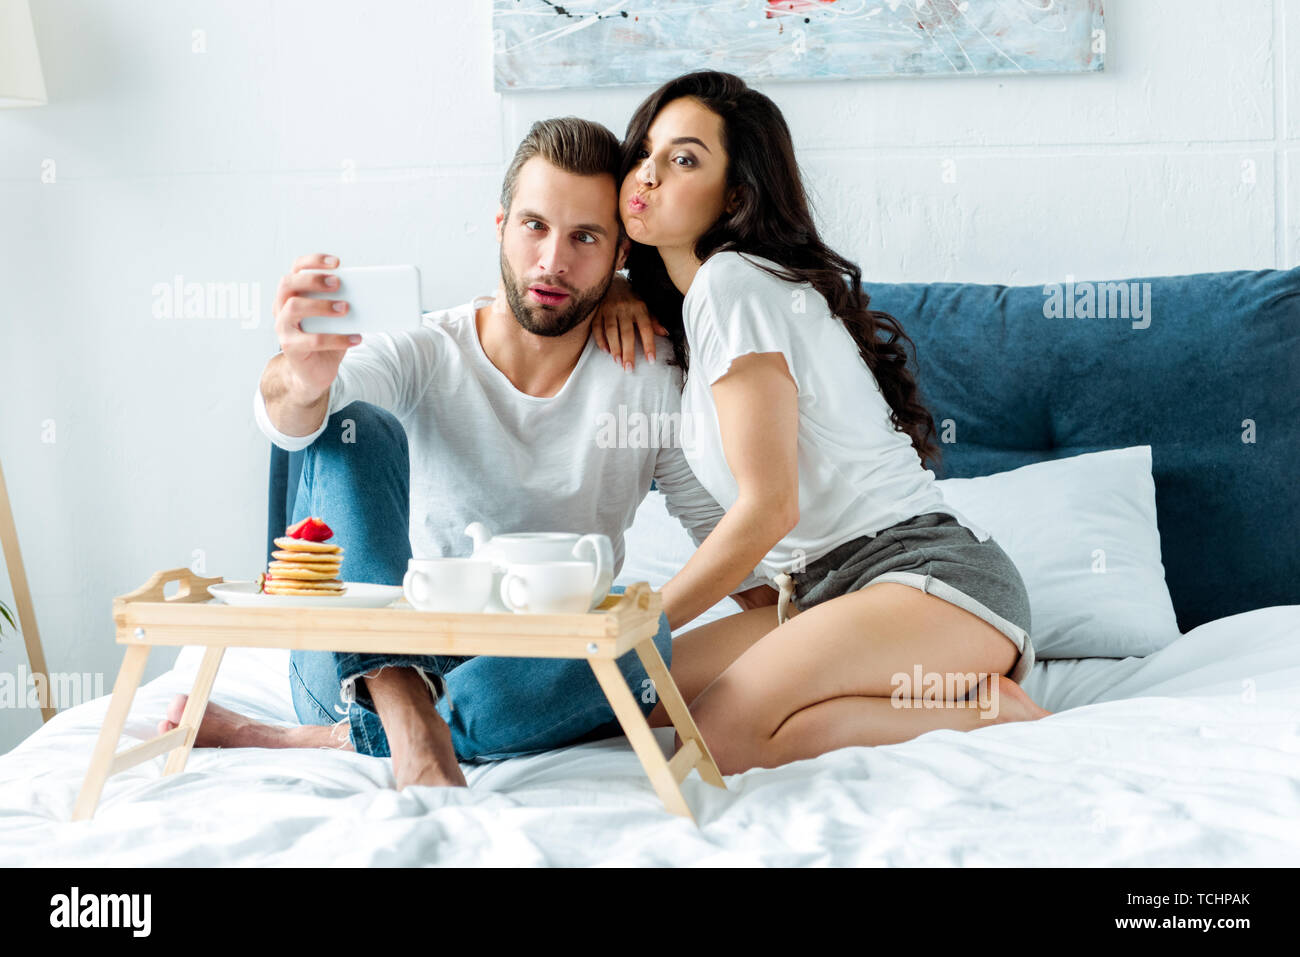 funny couple grimacing taking selfie on smartphone near wooden tray with breakfast in bed - Stock Image